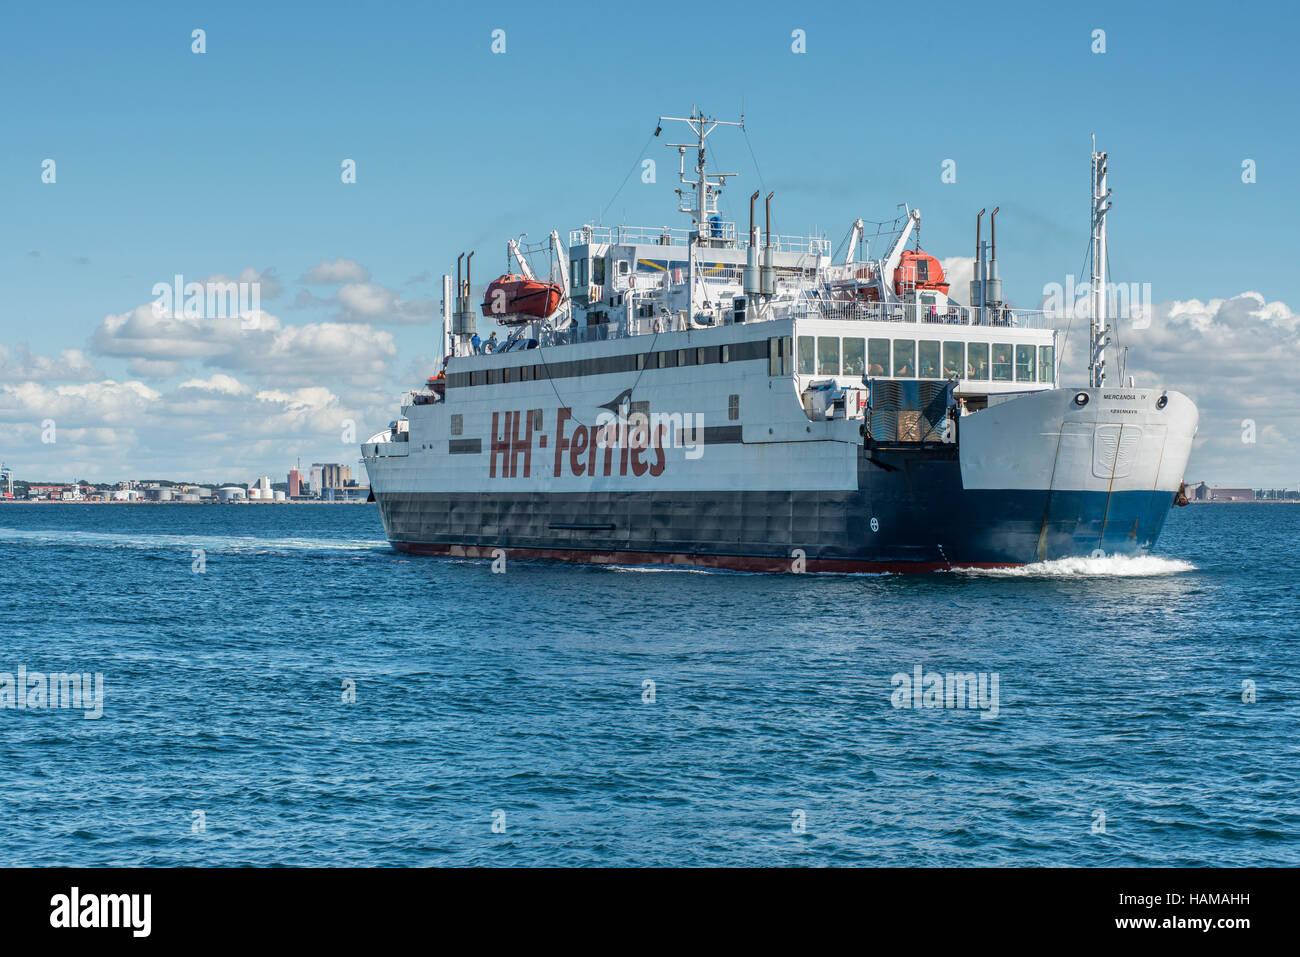 Mercandia IV ferry of shipping company HH Ferries, on the Elsinore-Helsingborg route between Denmark and Sweden - Stock Image